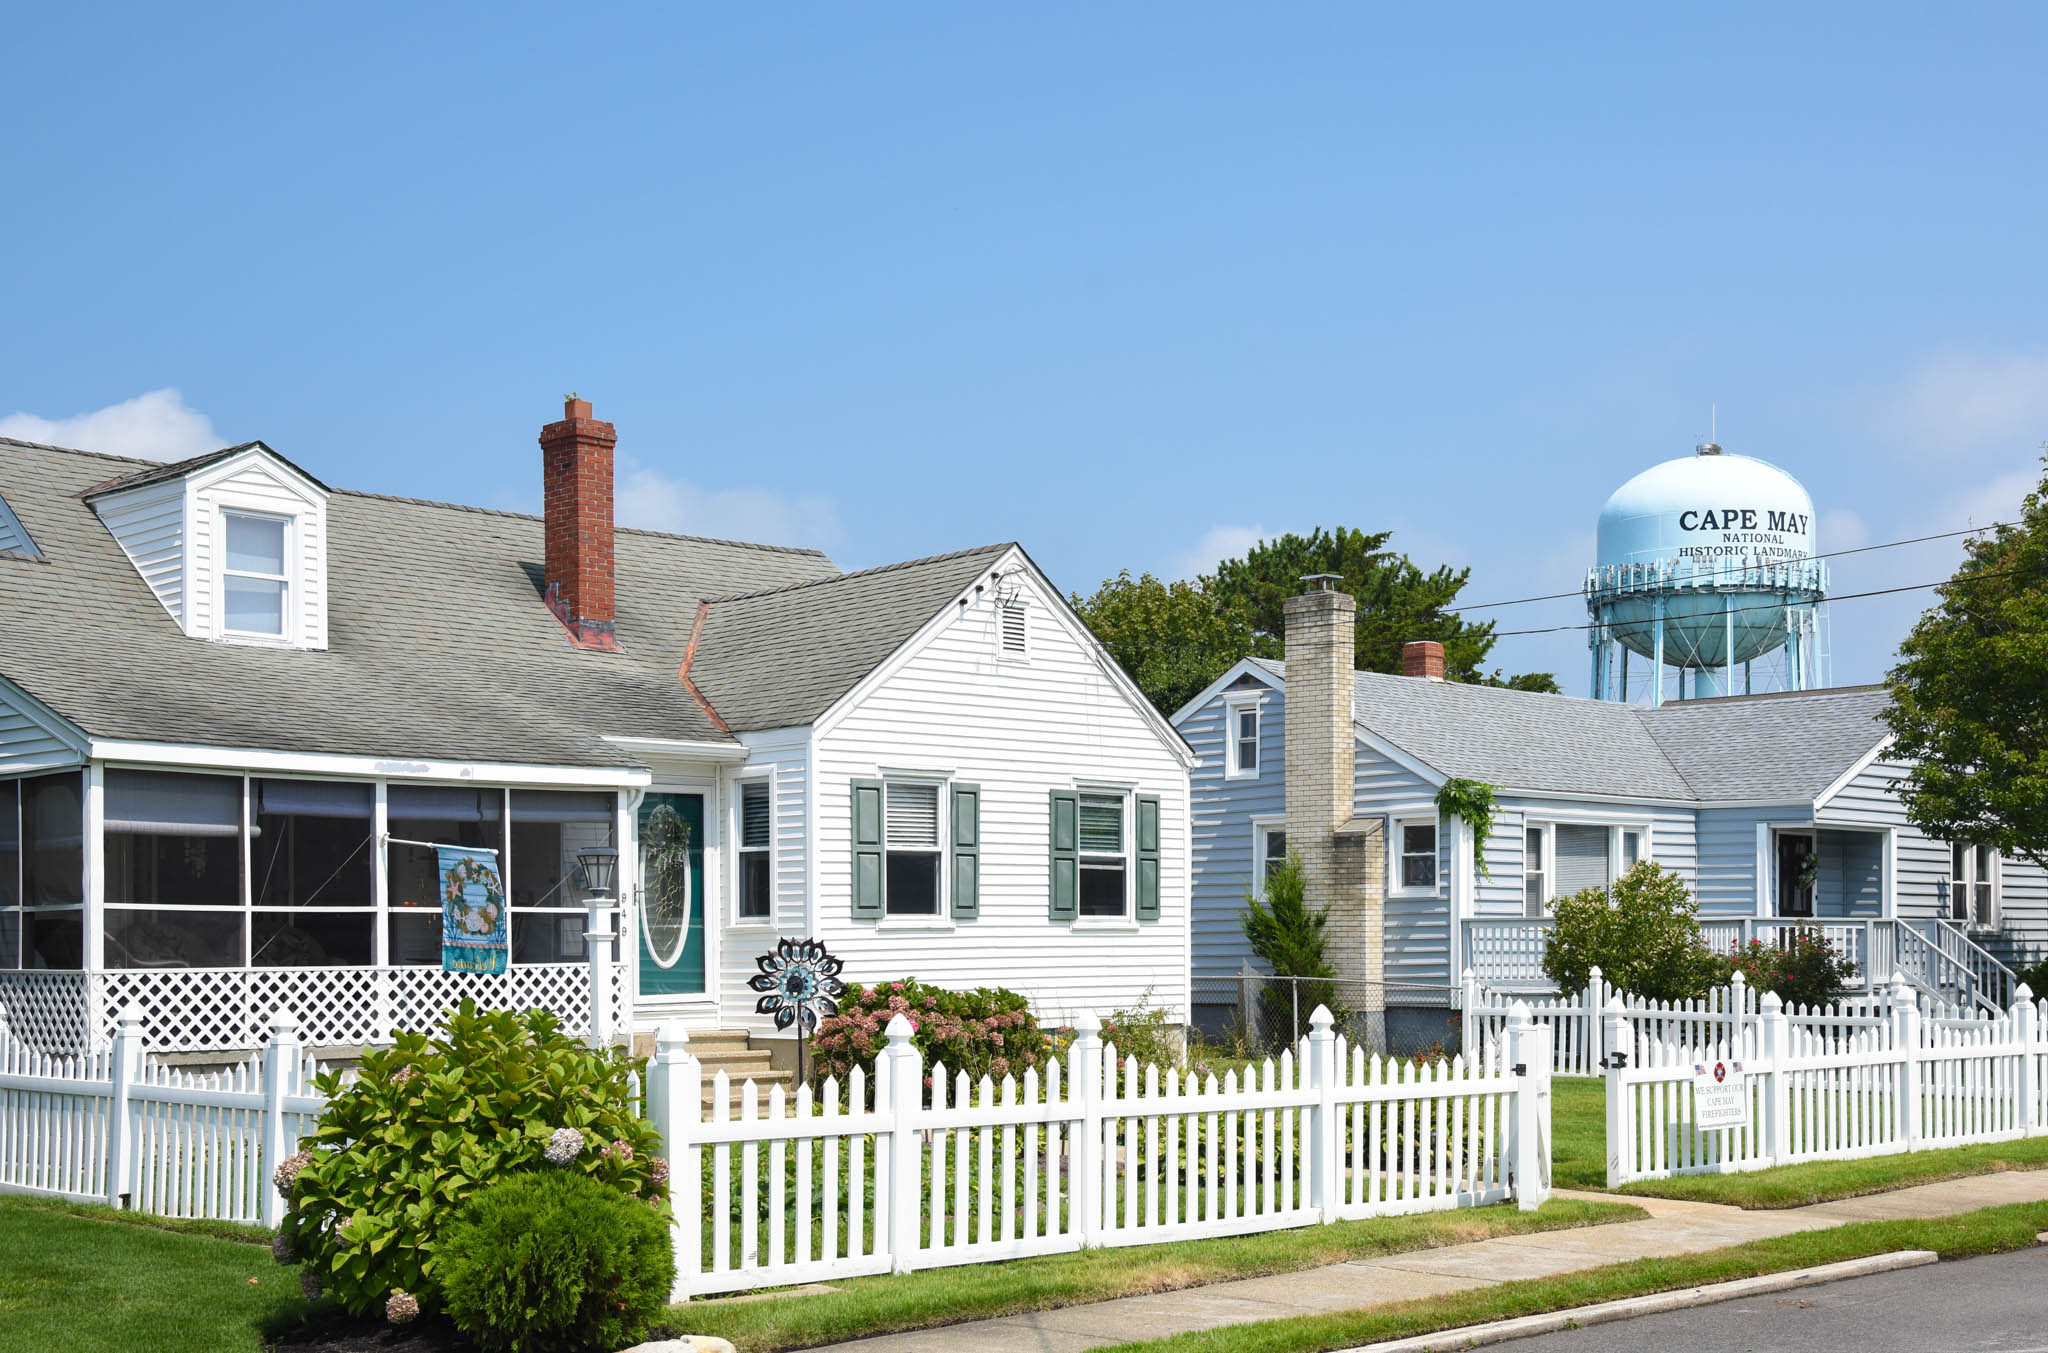 Sewell Avenue view of two homes with the Cape May Water tower just behind them.